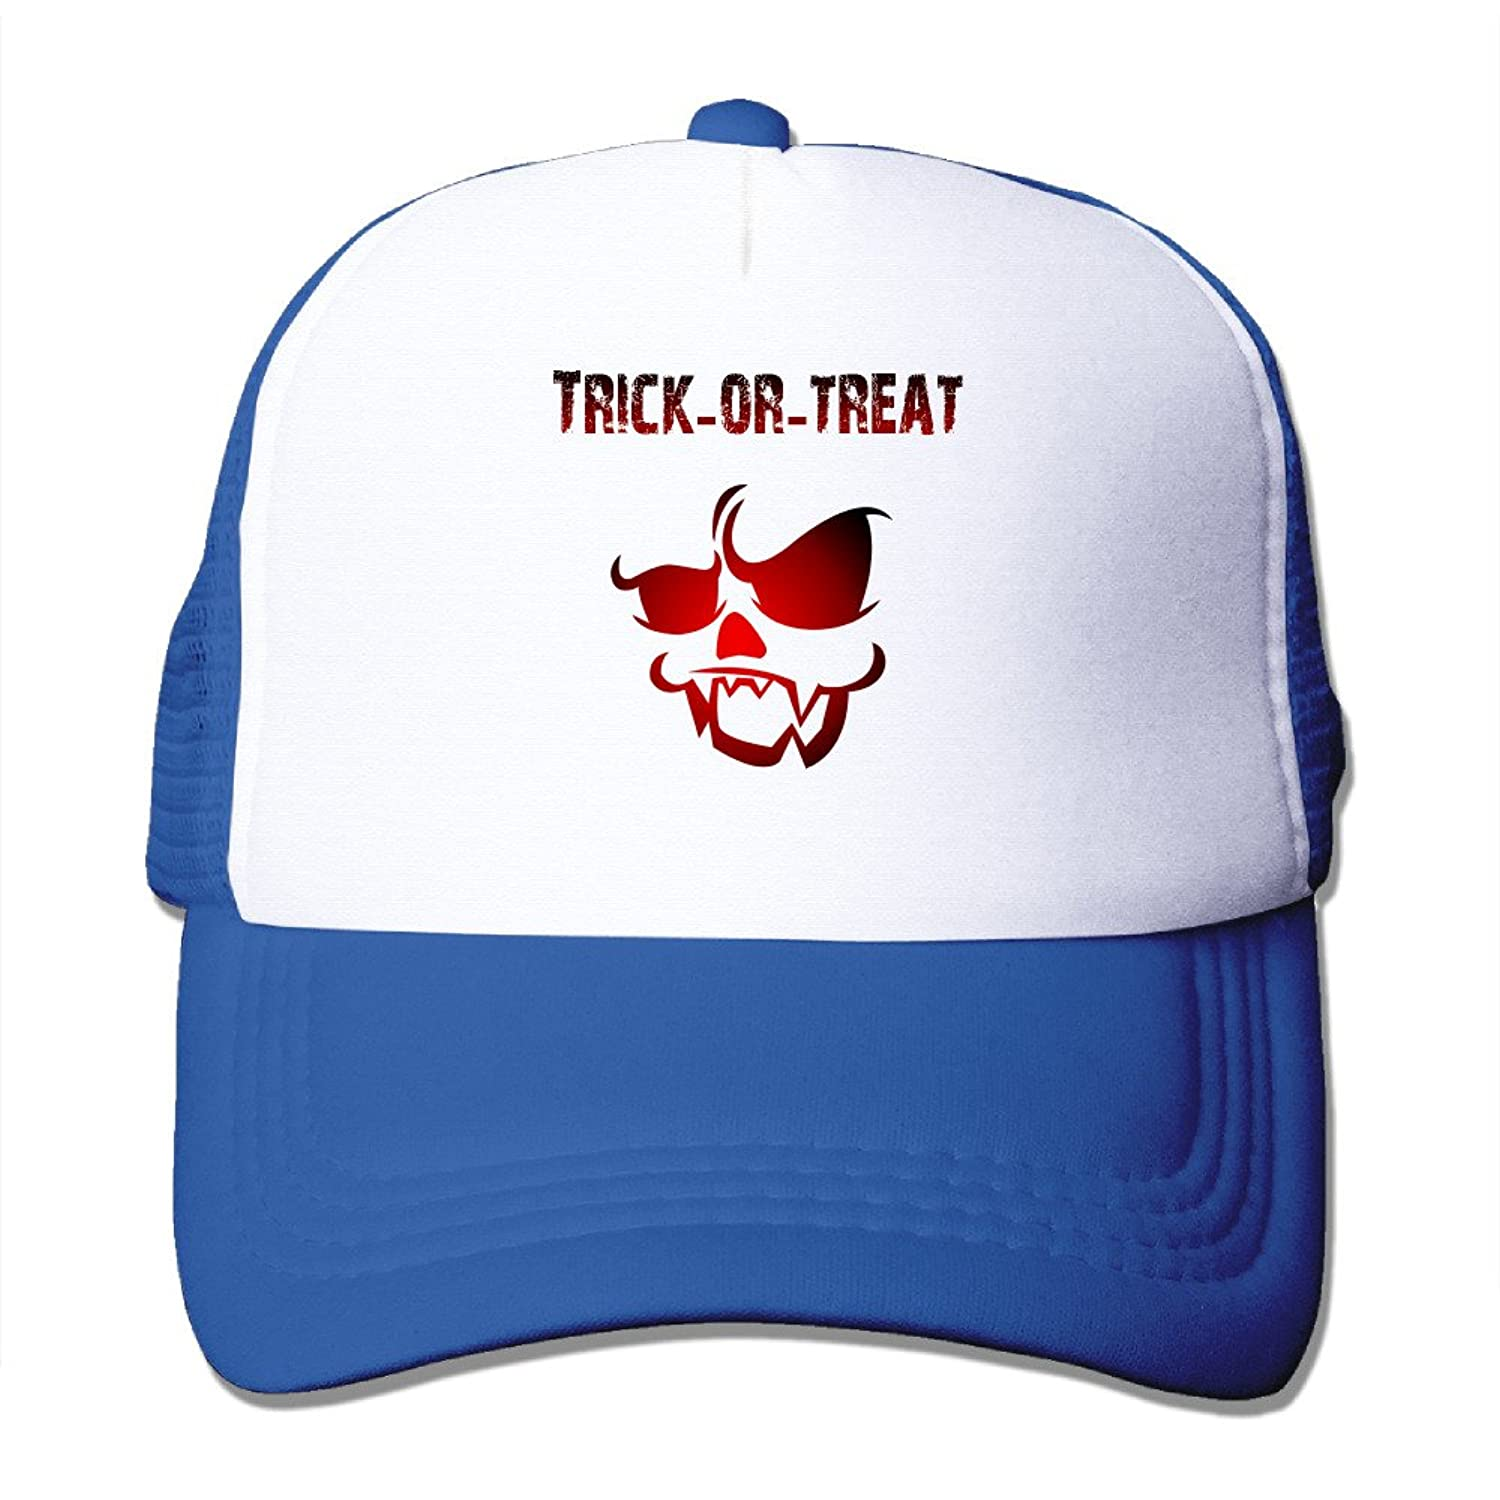 Custom Your Own Adult Unisex Happy Halloween Day 100% Nylon Mesh Caps One Size Fits Most Adjustable Hat